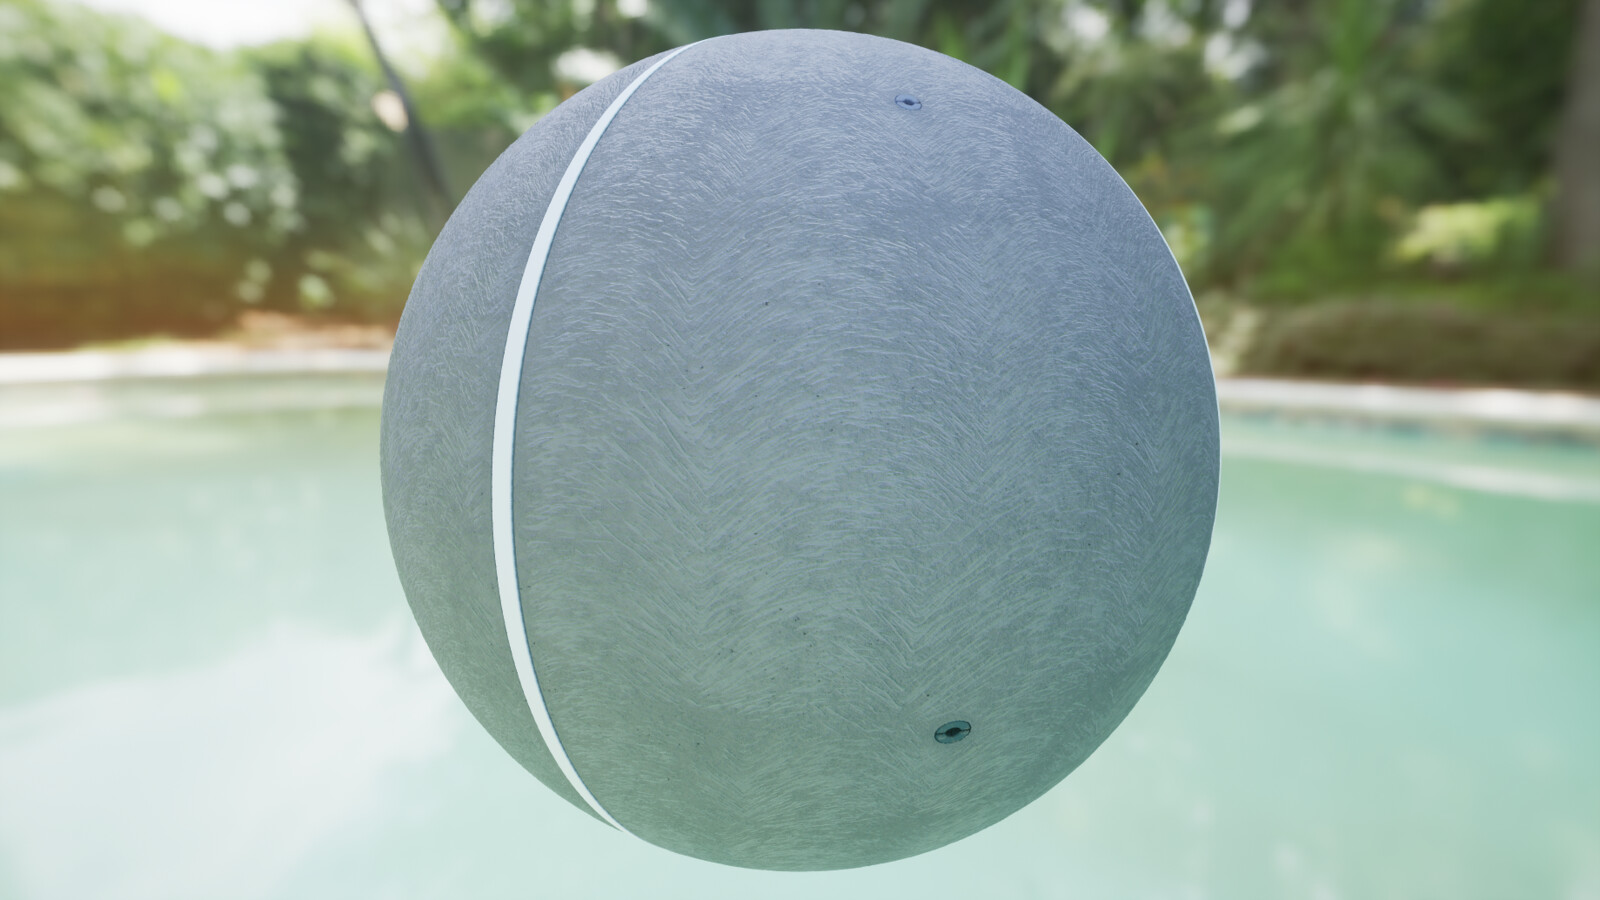 4K material applied in UE4 on a simple sphere and cylinder mesh. Lit with a simple lighting setup and an HDRI.